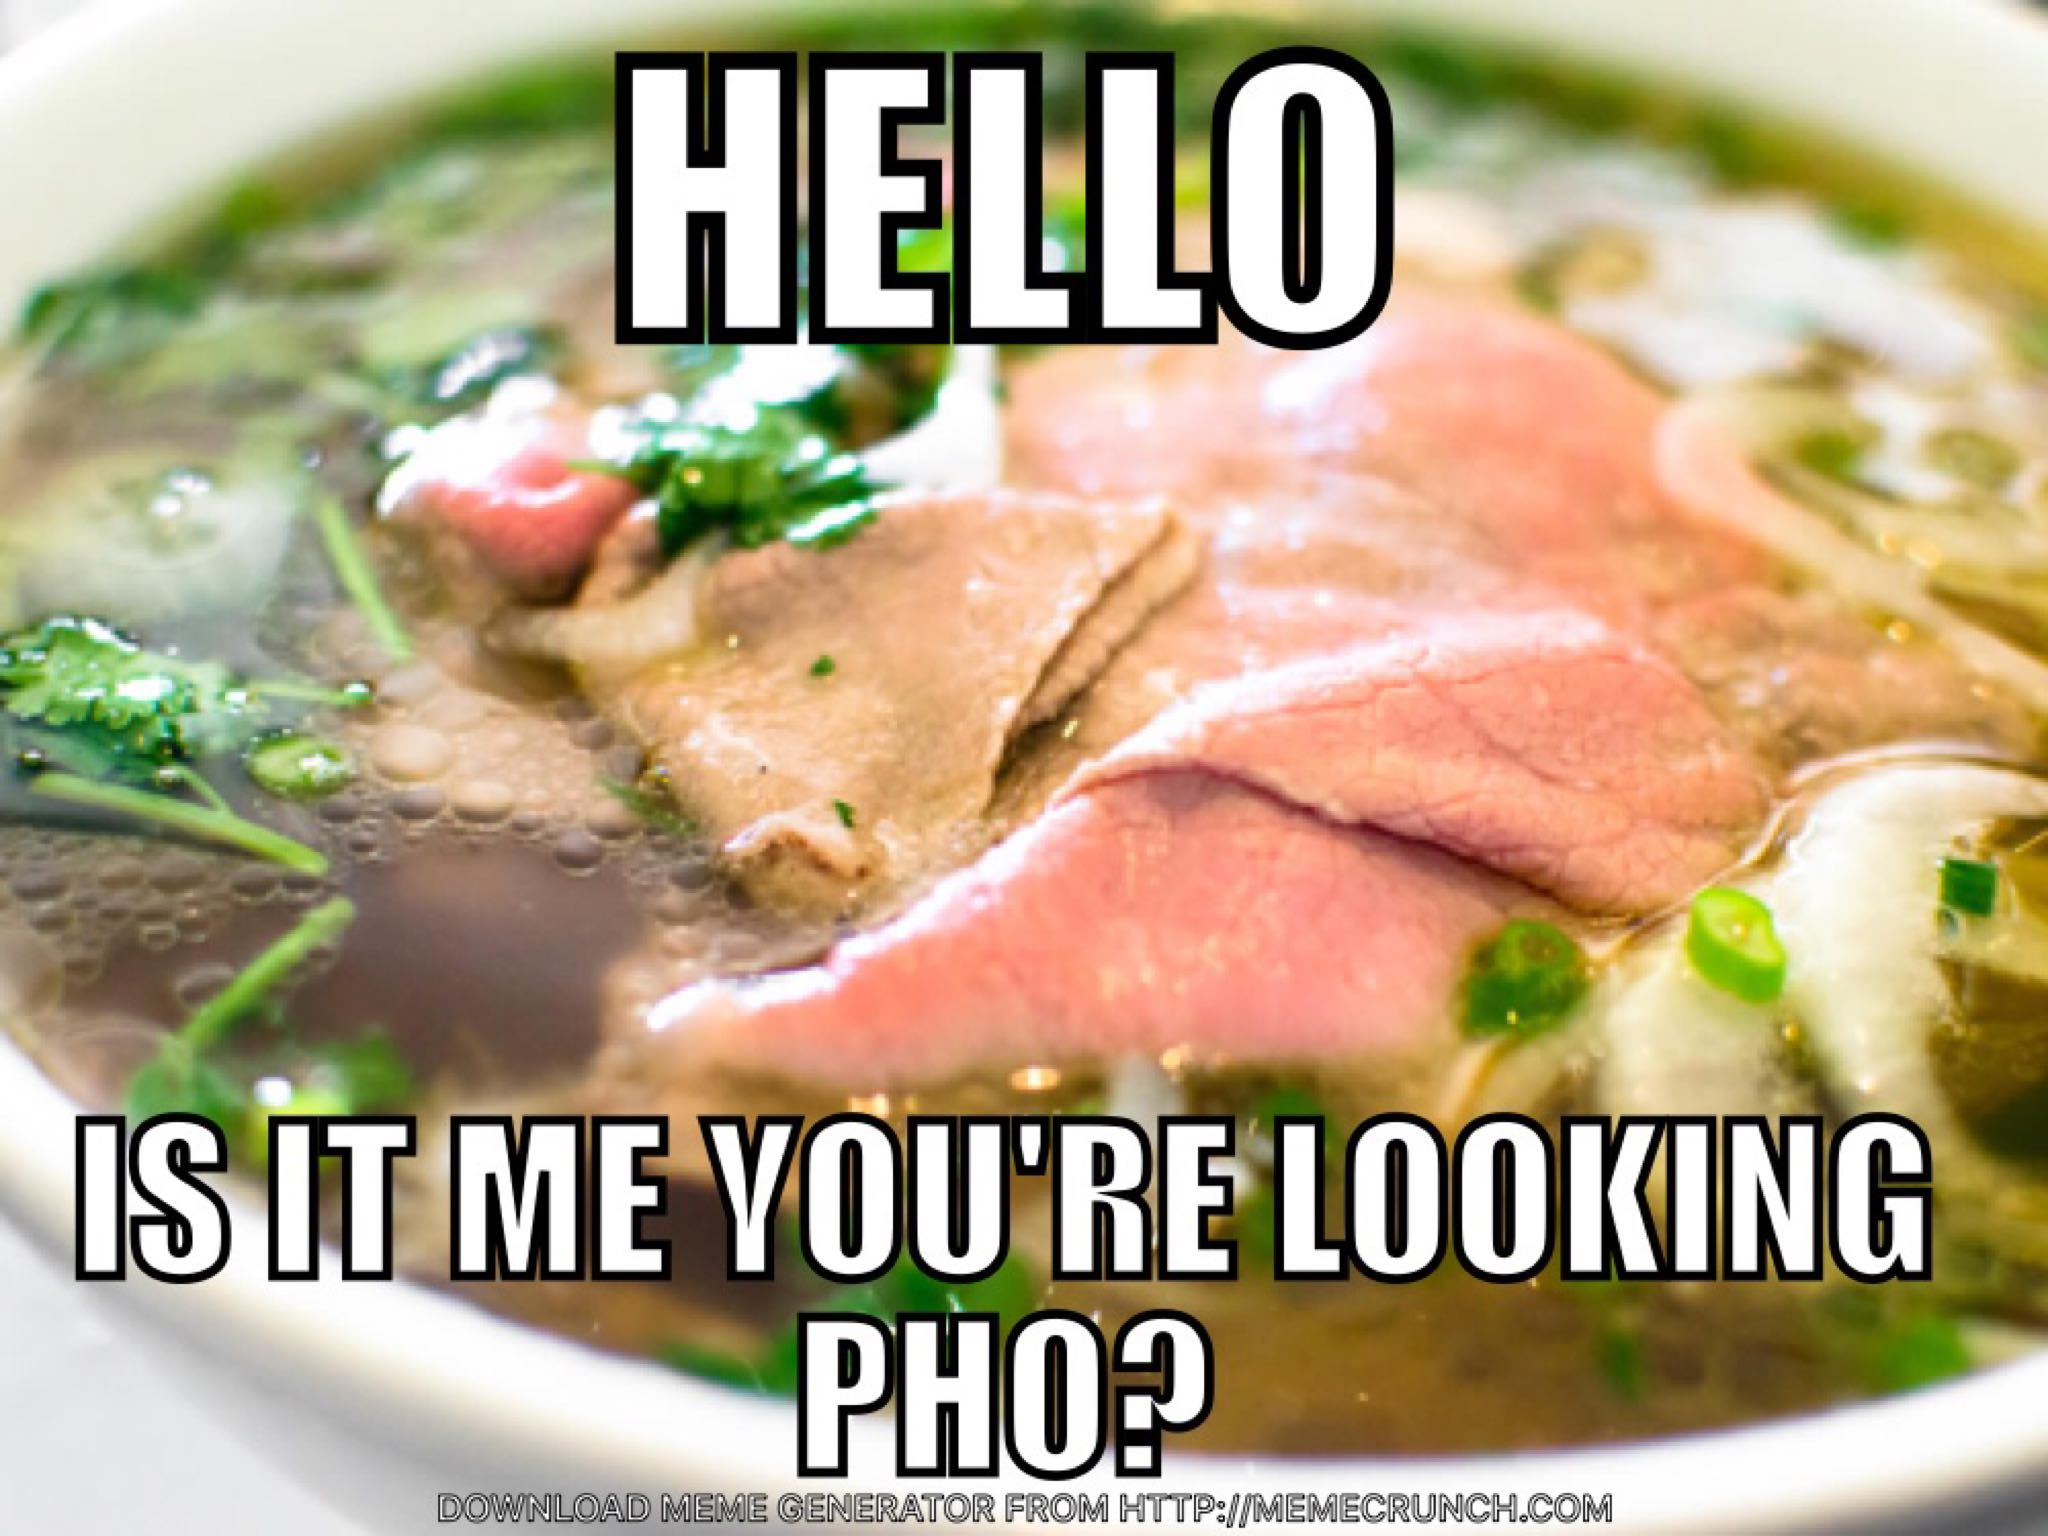 hello, is it me you're looking pho, meme